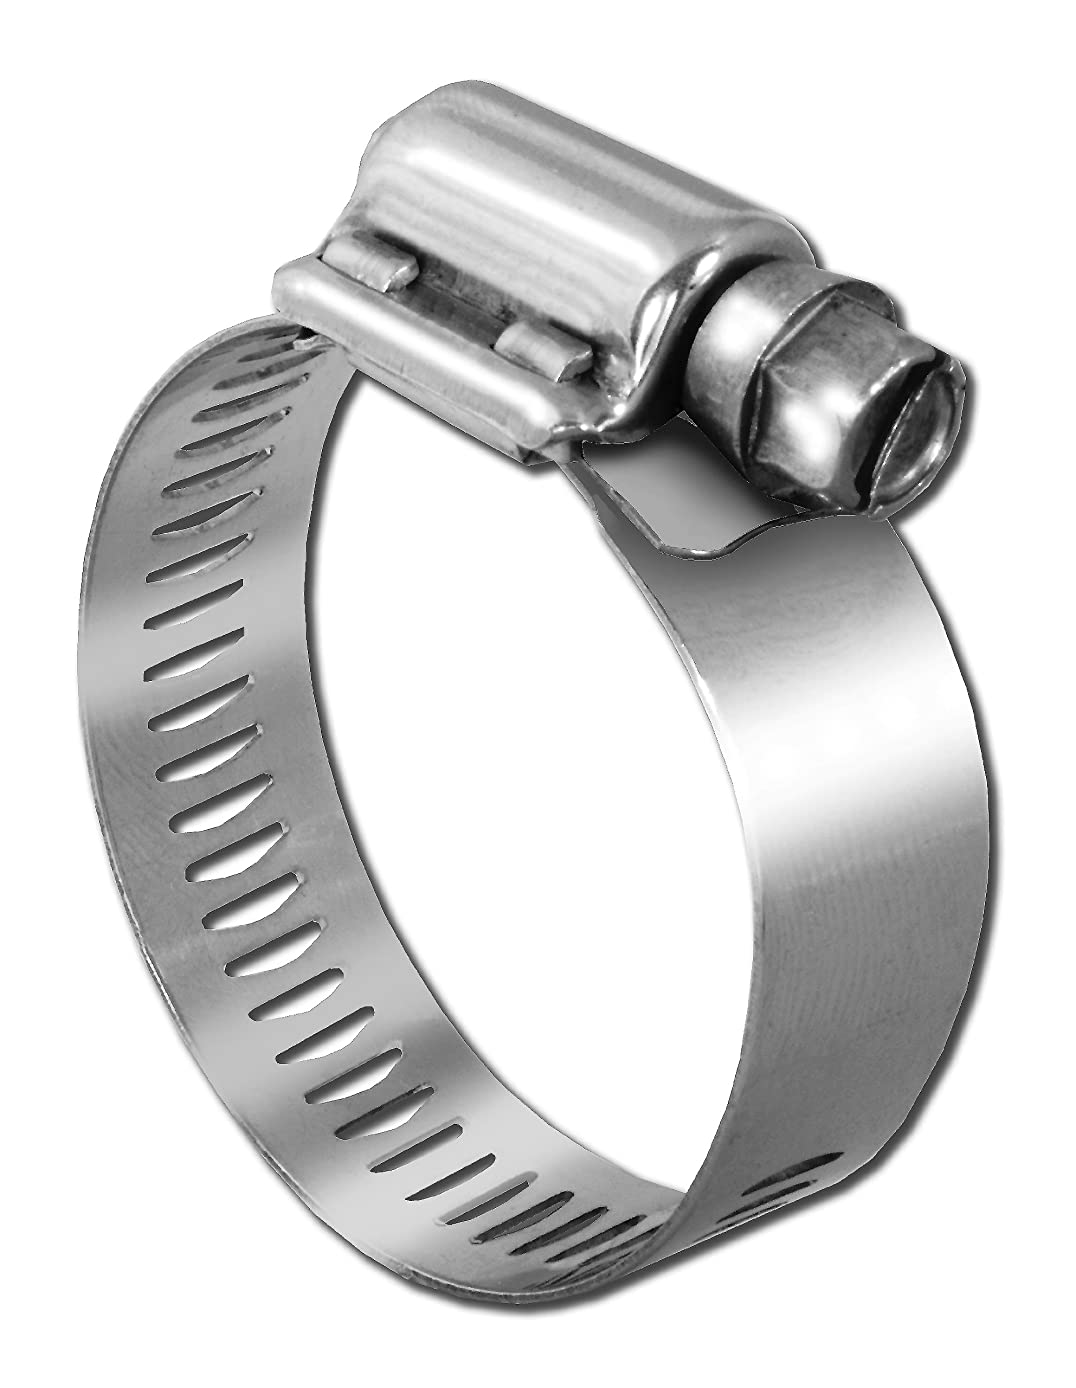 Pro Tie 33509 SAE Size 056 Range 3-1/16-Inch-4-Inch Heavy Duty All Stainless Hose Clamp, 4-Pack